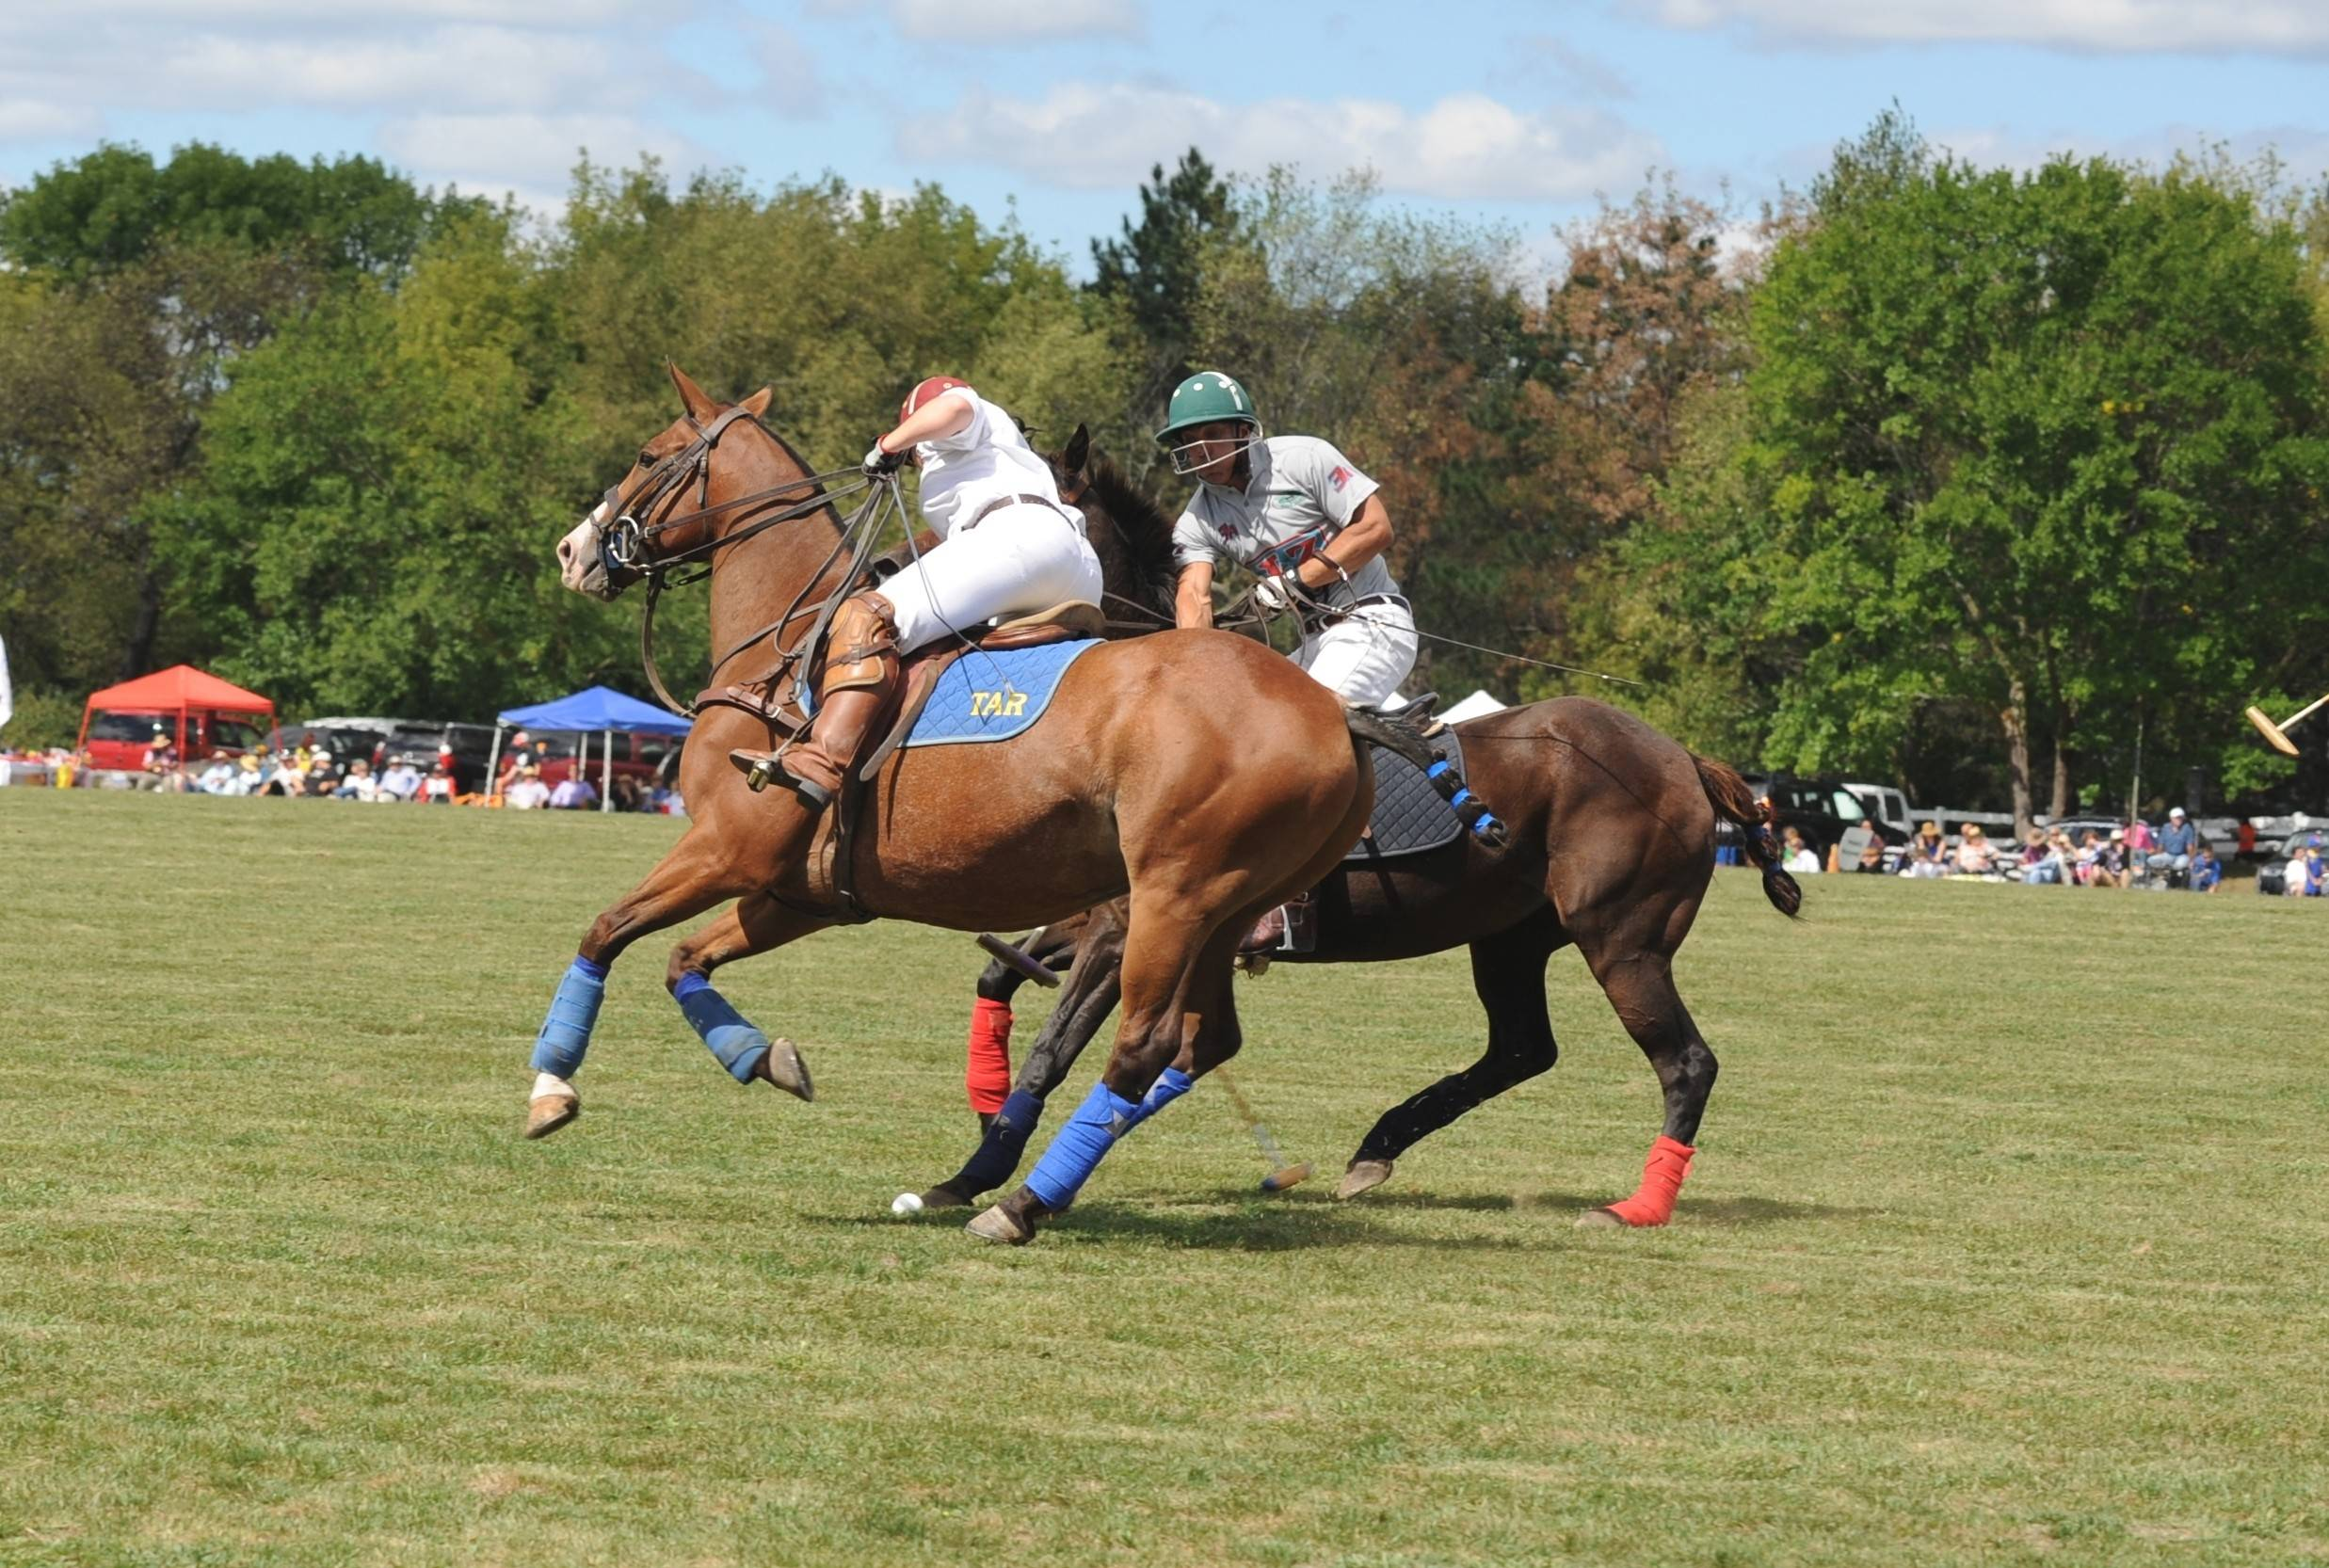 Tracy Regas, left, competes with Jeff Hensel for the ball at a Barrington Hills Polo Club match. Both are graduates of the Barrington Hills Polo School.